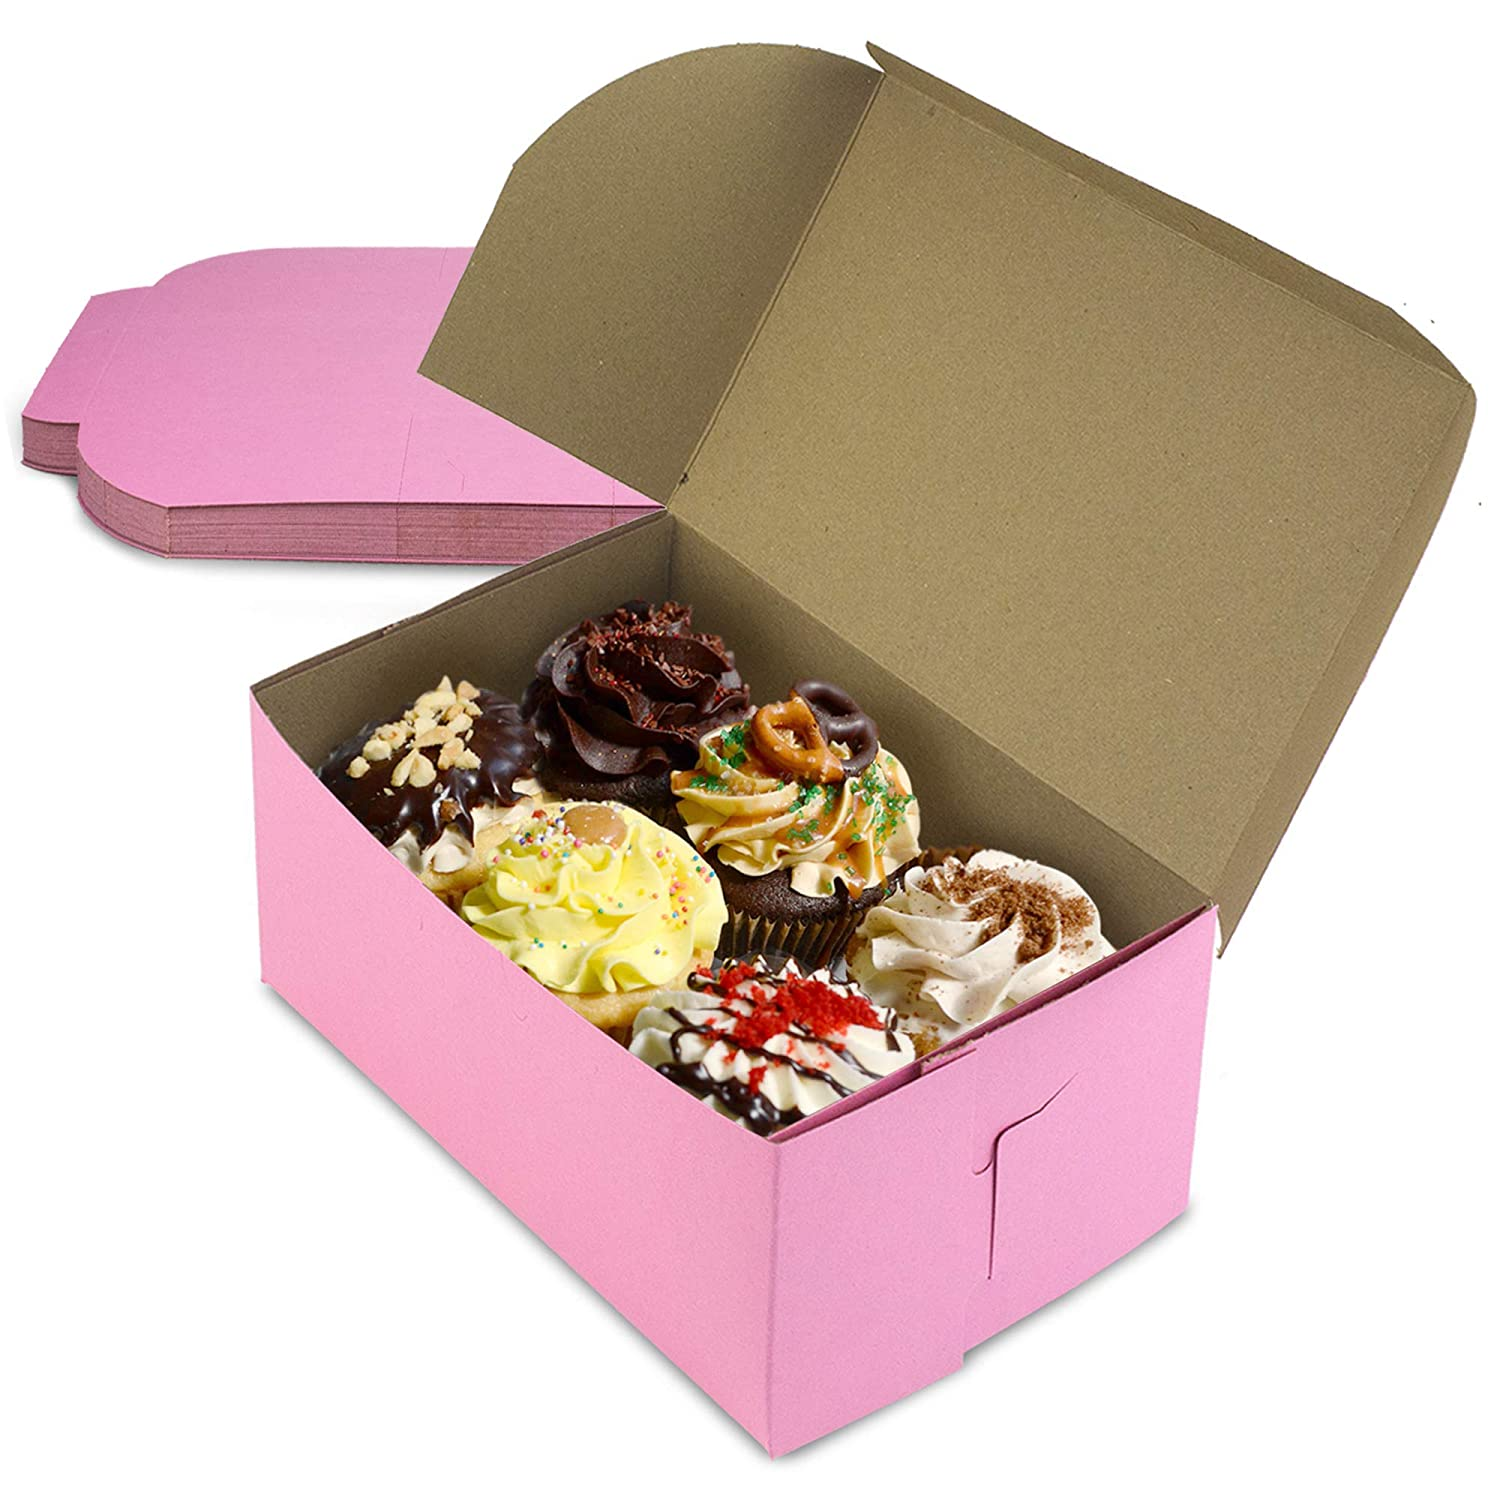 [10 Pack] Pink Bakery Boxes - 8 x 5 x 3.5 Inches Pink Cake Boxes - Pastry Box for Cupcakes, Desserts, Cookies, Candies - Ideal Packaging for Bakeries and Home-Made Baked Treats, Favors, and Gifts